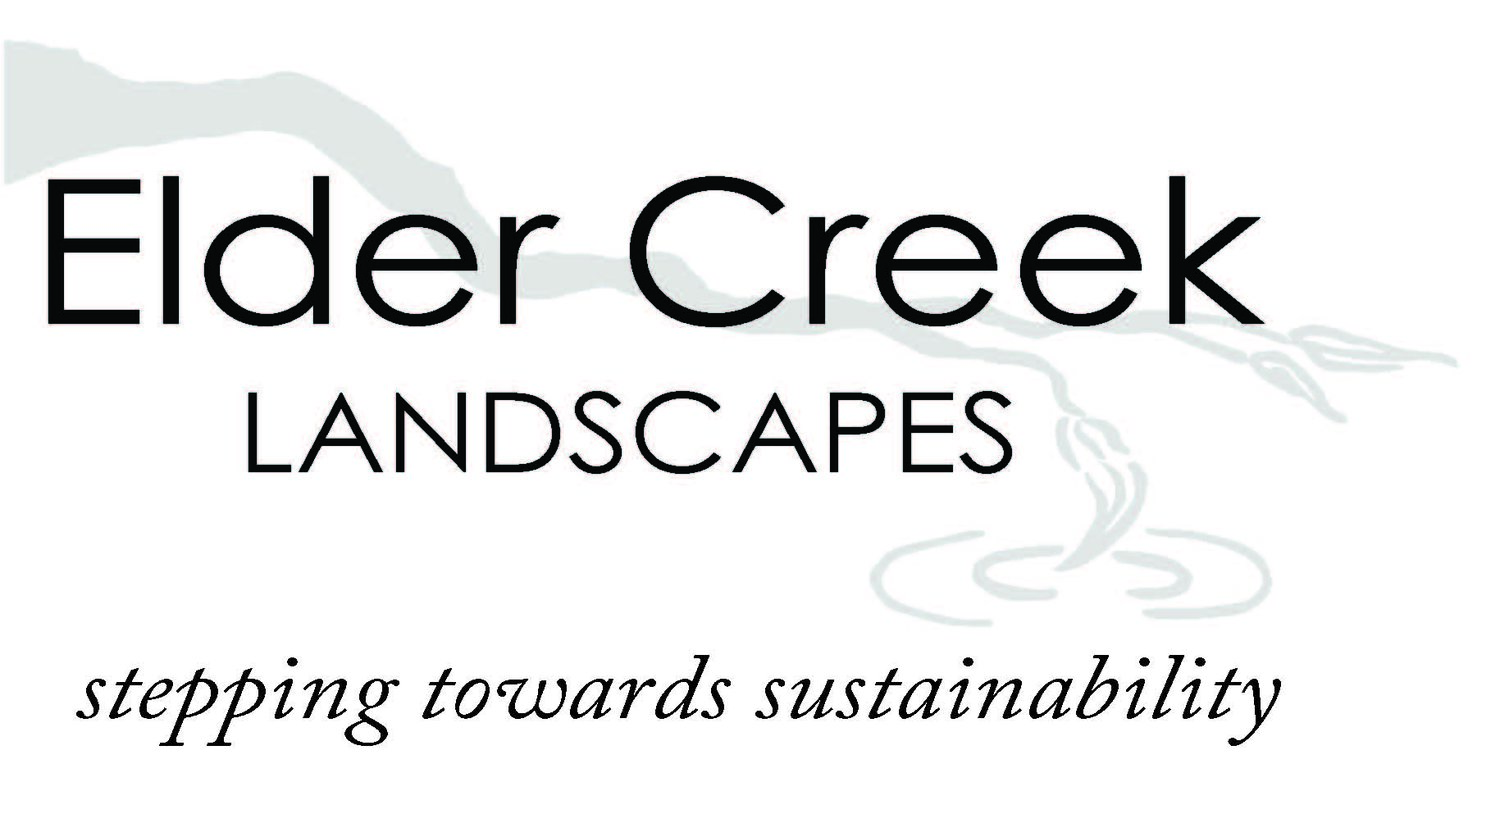 Elder Creek Landscapes